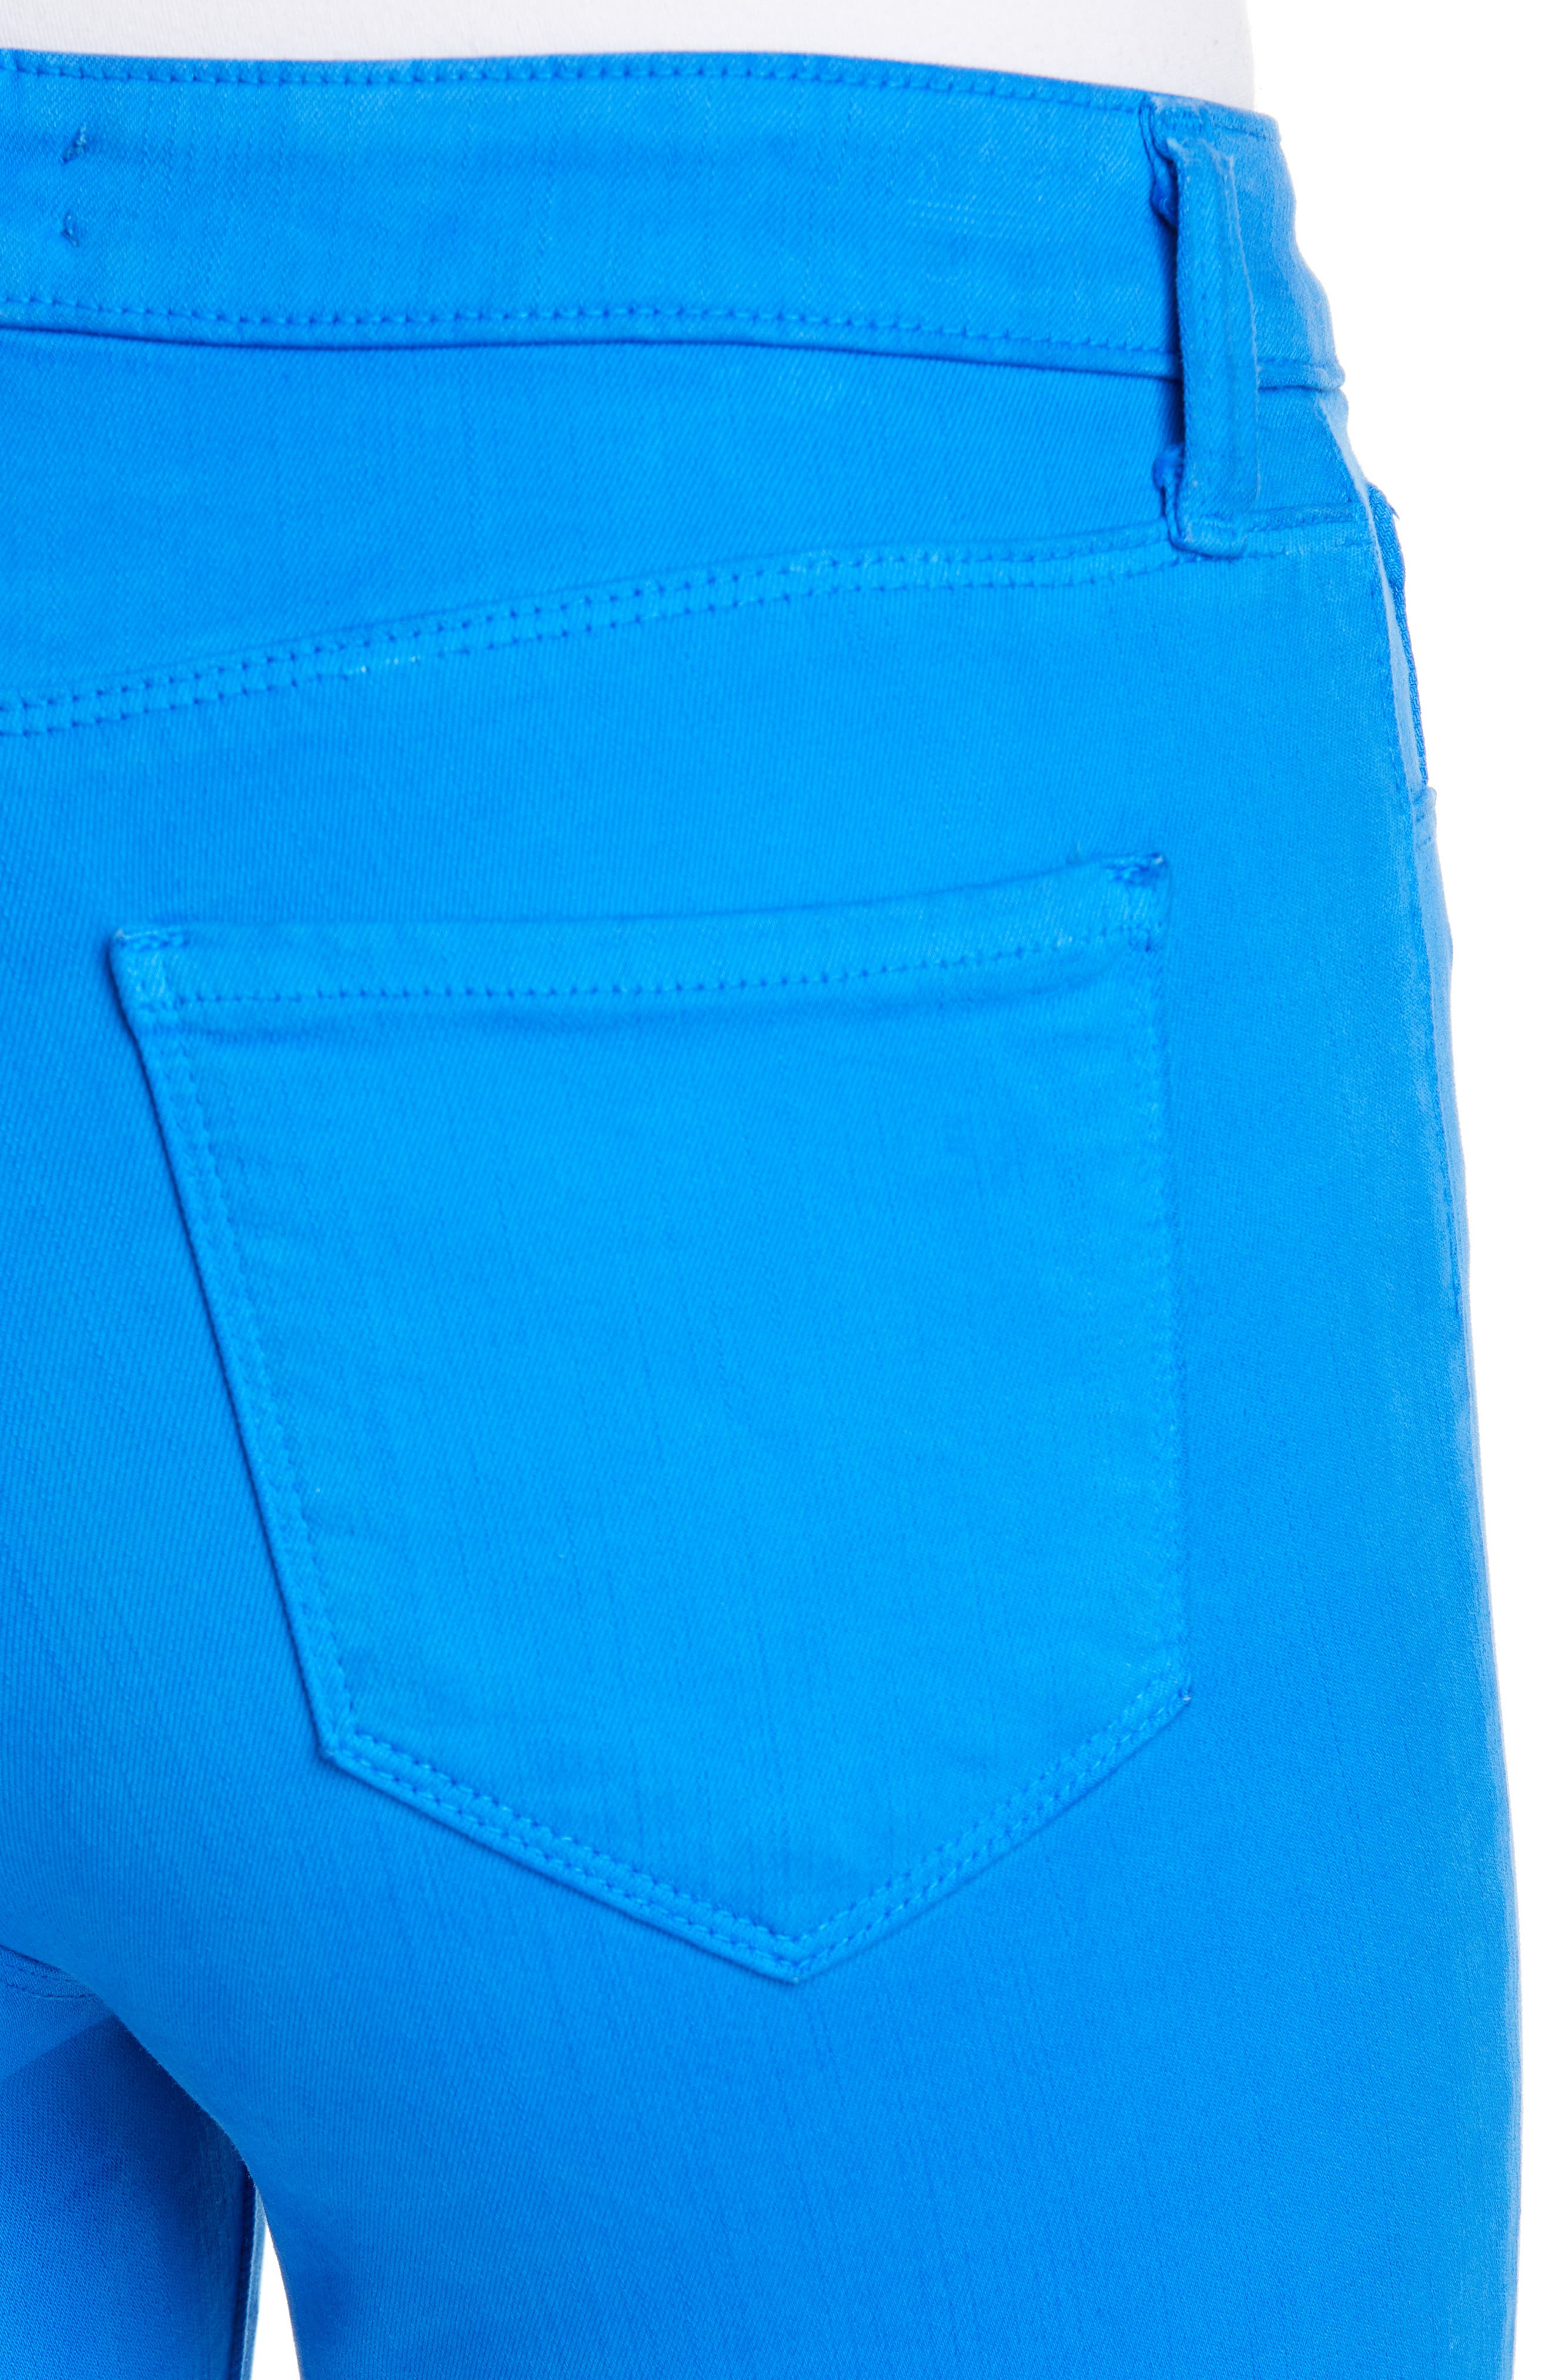 L'AGENCE, High Waist Skinny Ankle Jeans, Alternate thumbnail 5, color, RIVIERA BLUE